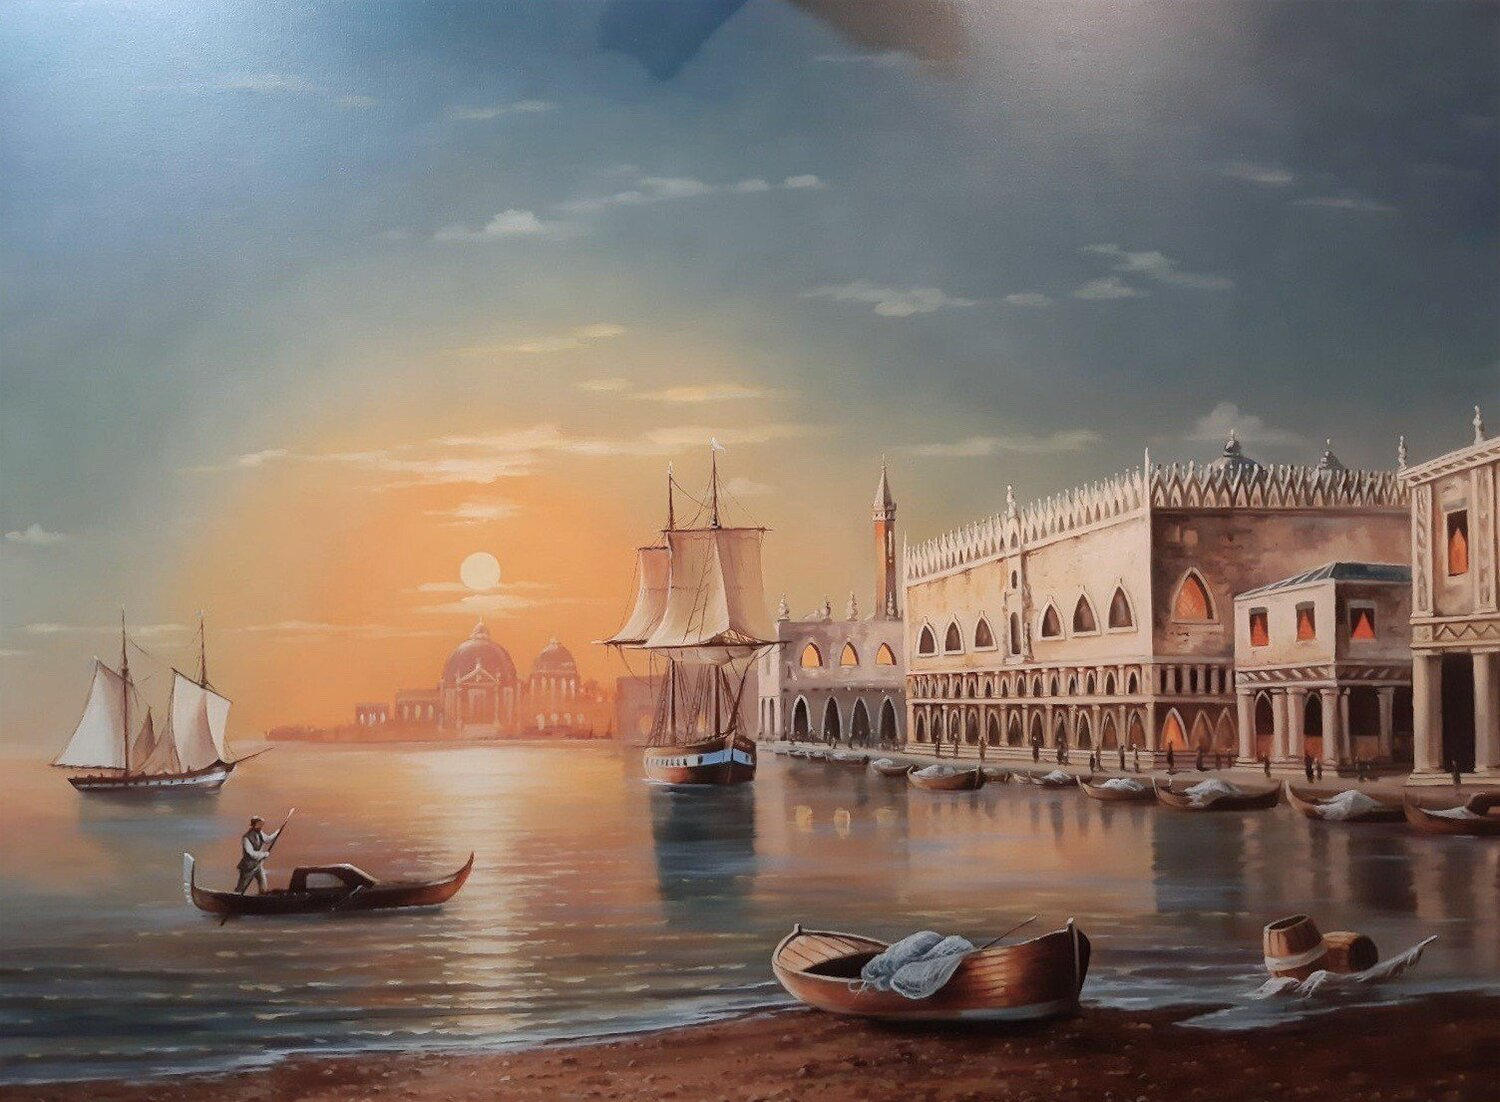 THE CALM Oil Painting on Canvas Made to Order. All sizes available